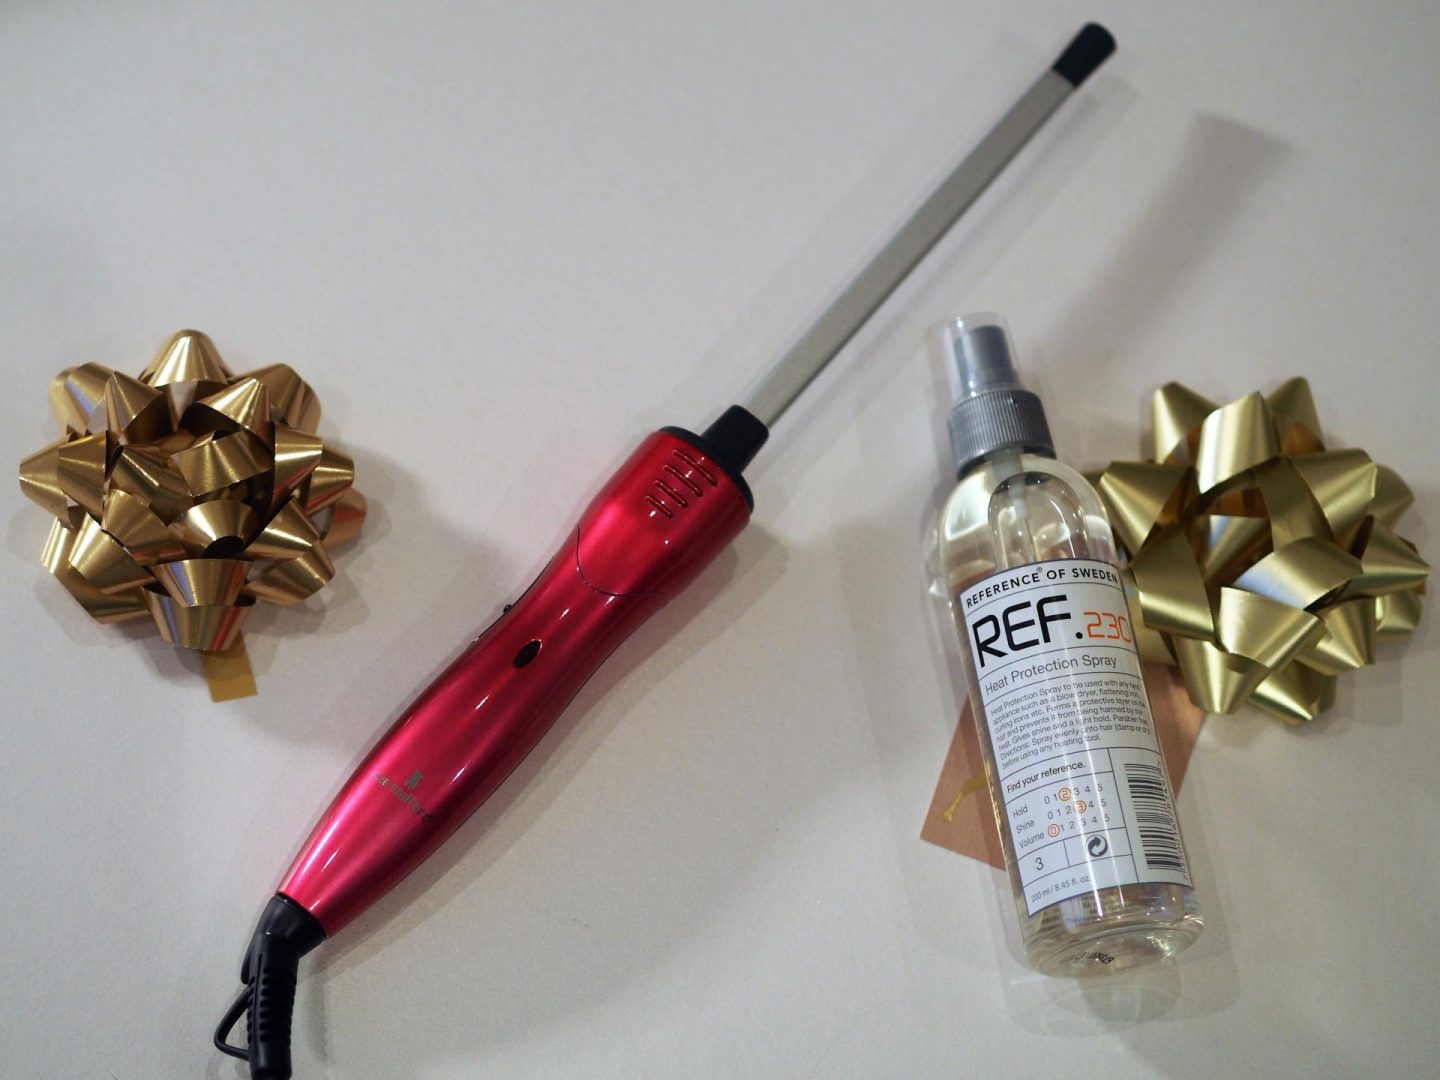 Lee Stafford Chopstick Styler and Christmas Gift Guide for Teen Girls